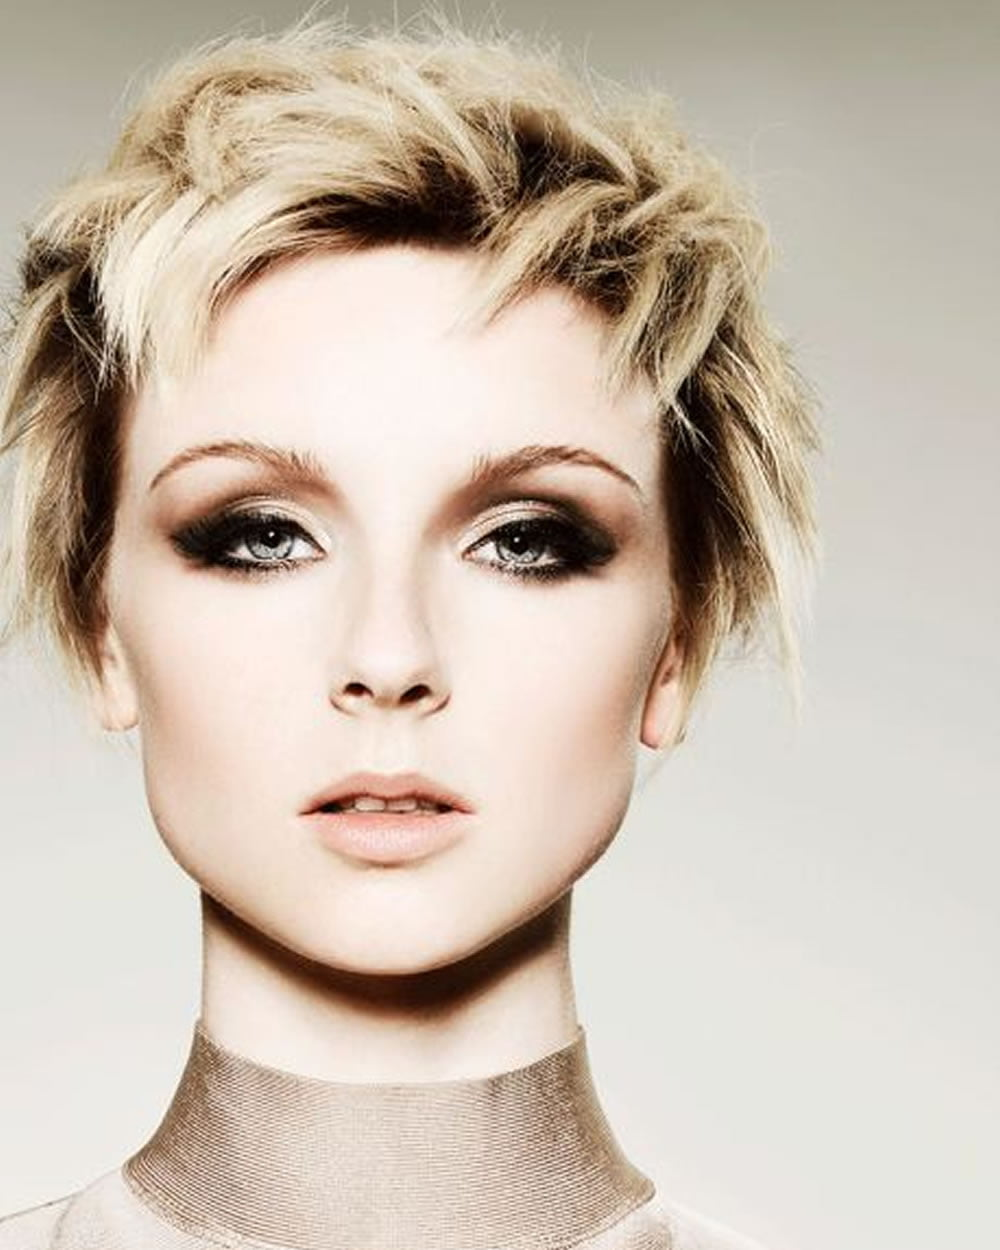 styles for really short hair hairstyles amp hair colors for pixie hair 7619 | Very Short Hairstyles Hair Colors for Short Pixie Hair 9